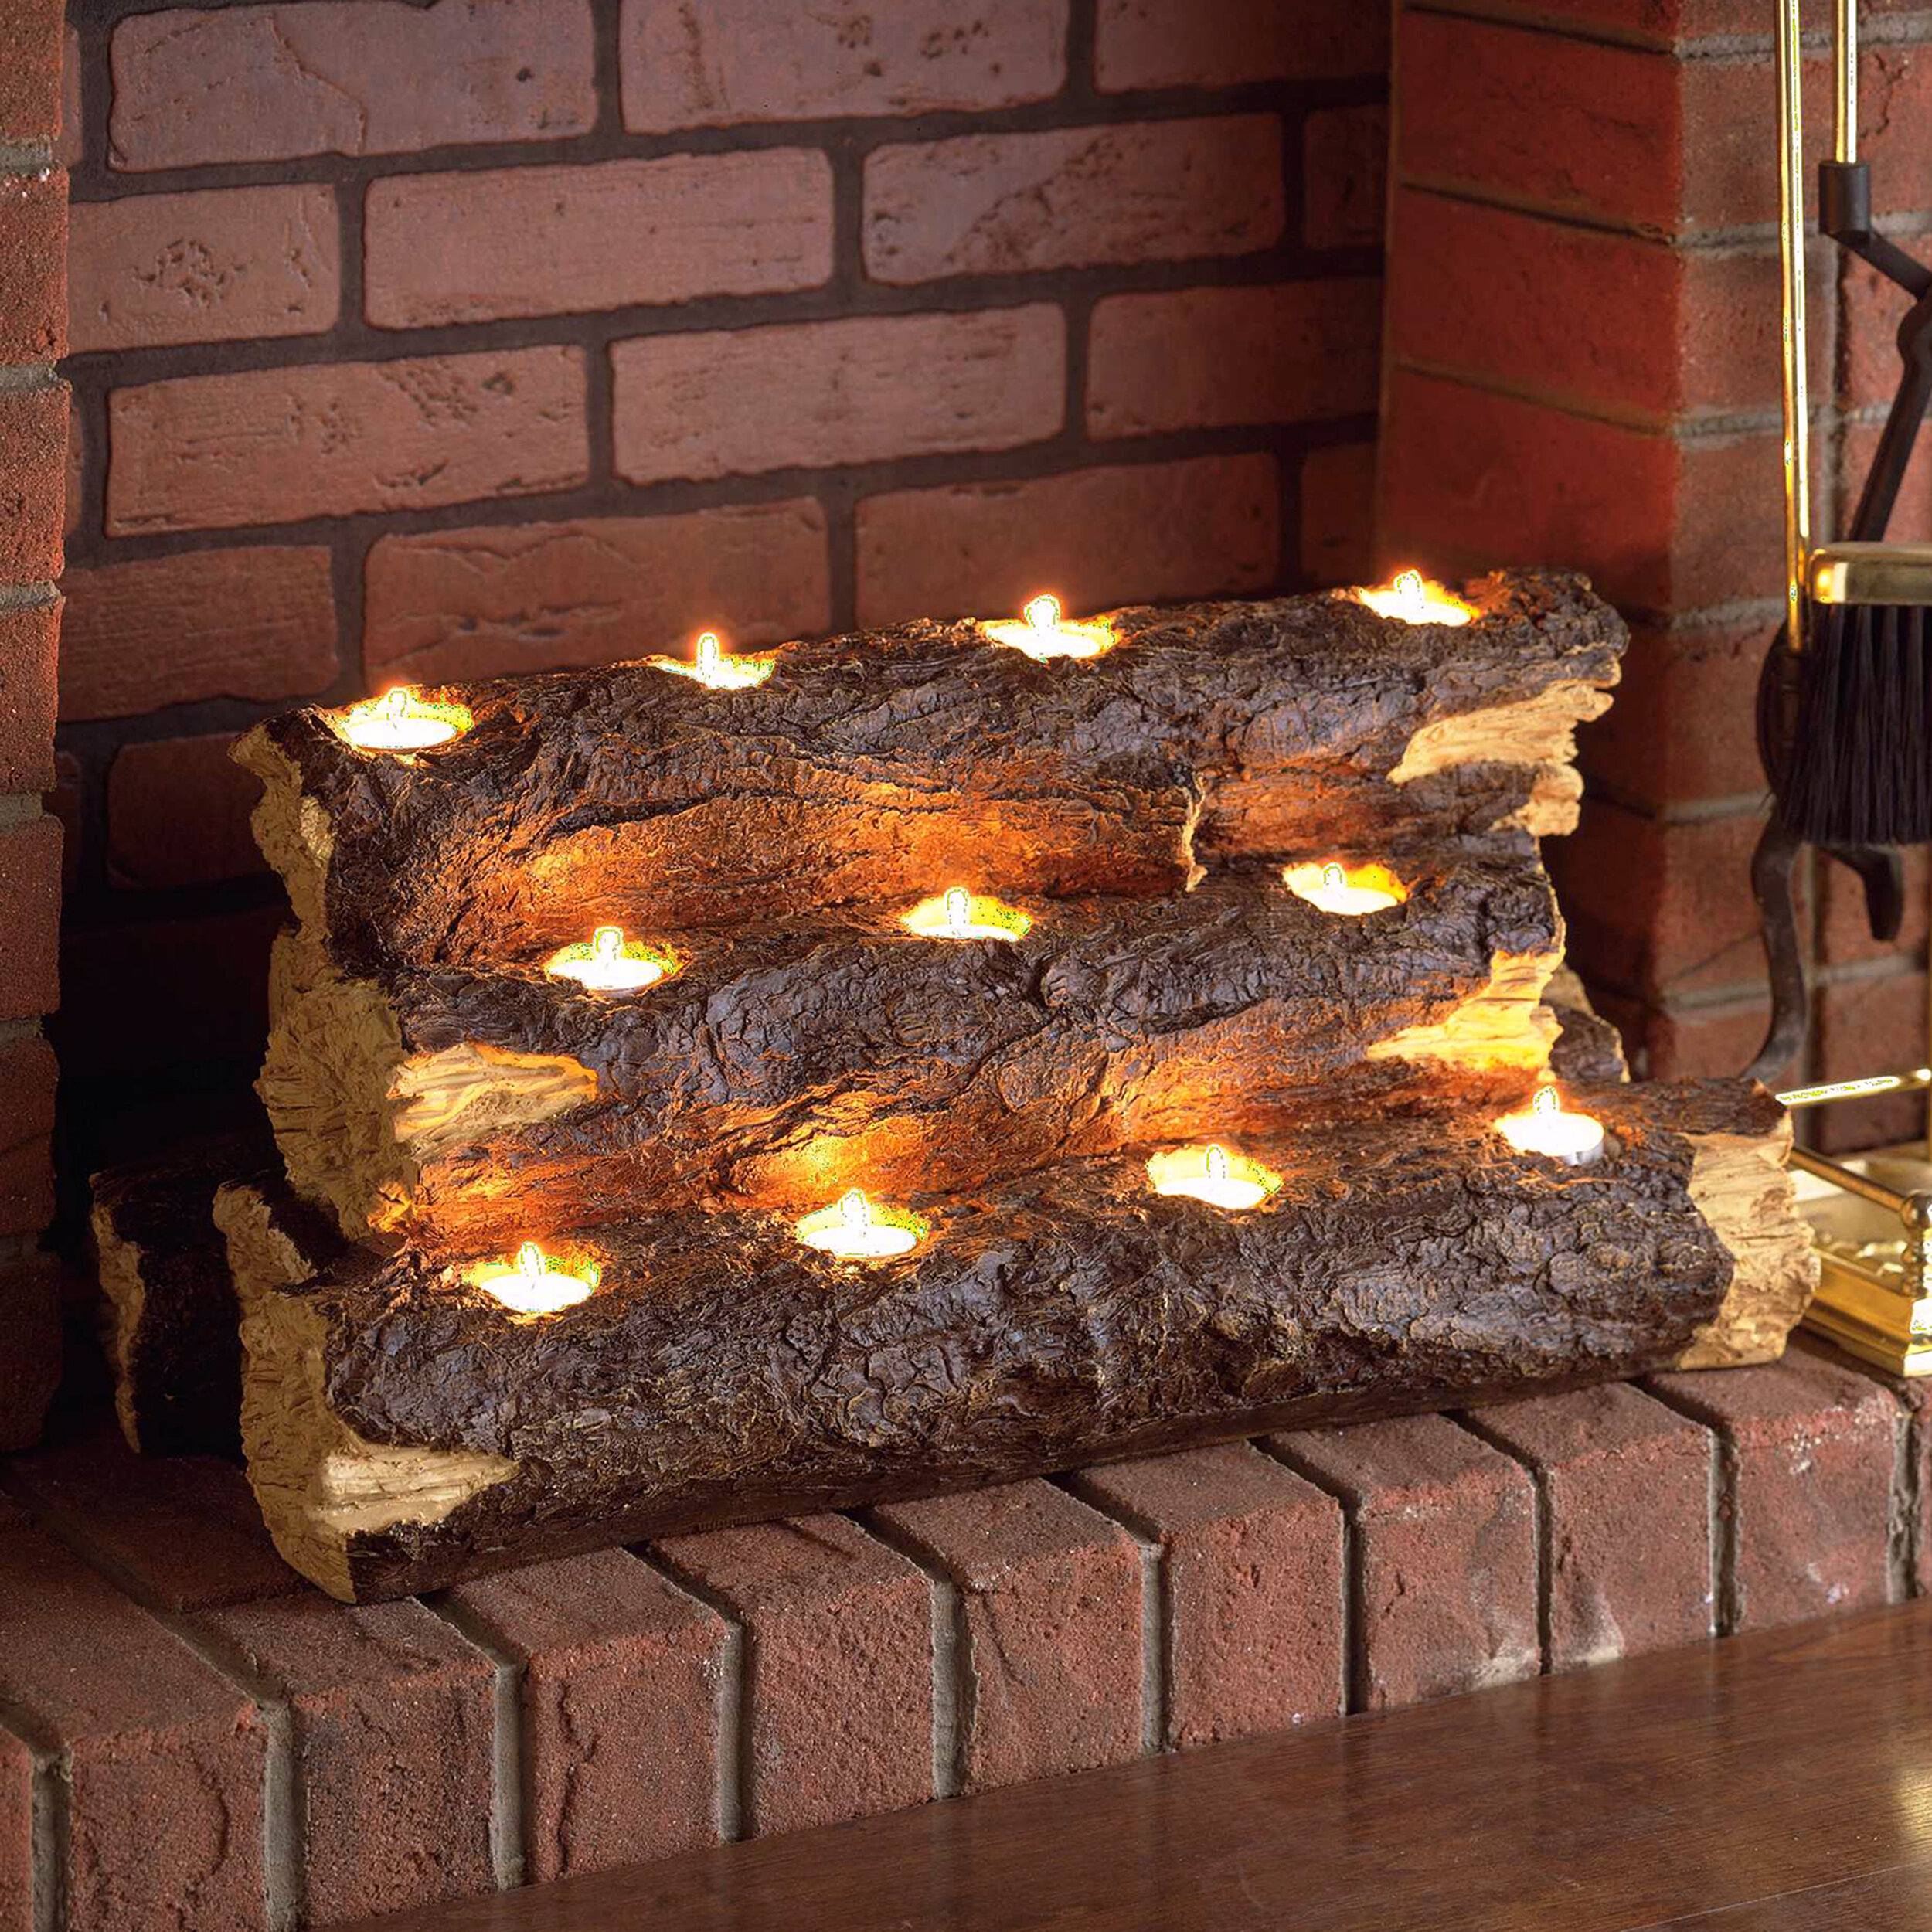 Wildon Home Tealight Fireplace Decorative Logs Reviews Wayfair